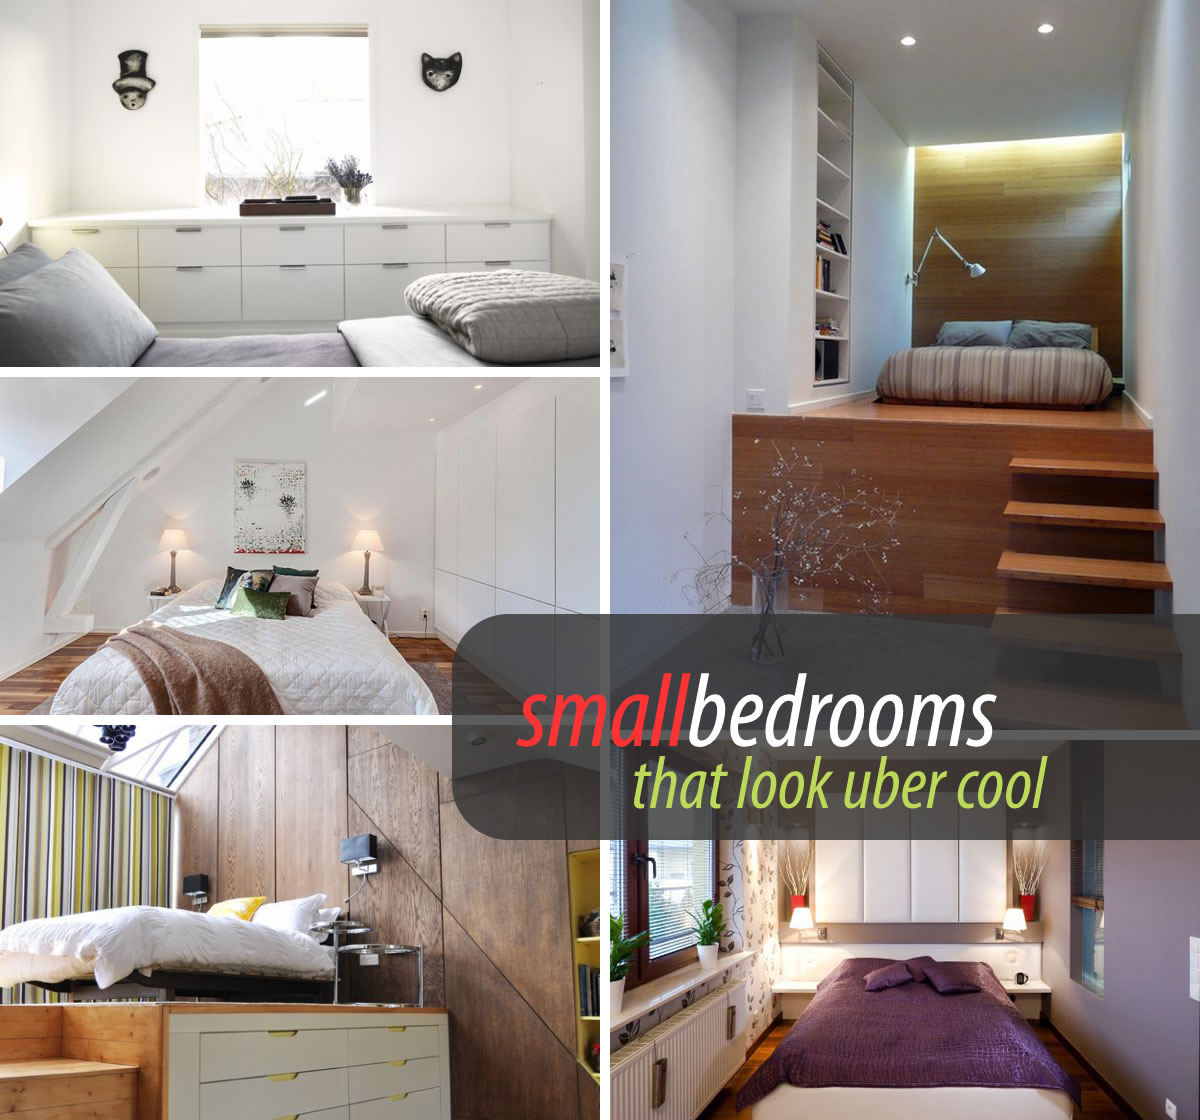 25 Bedroom Design Ideas For Your Home: Small Bedrooms